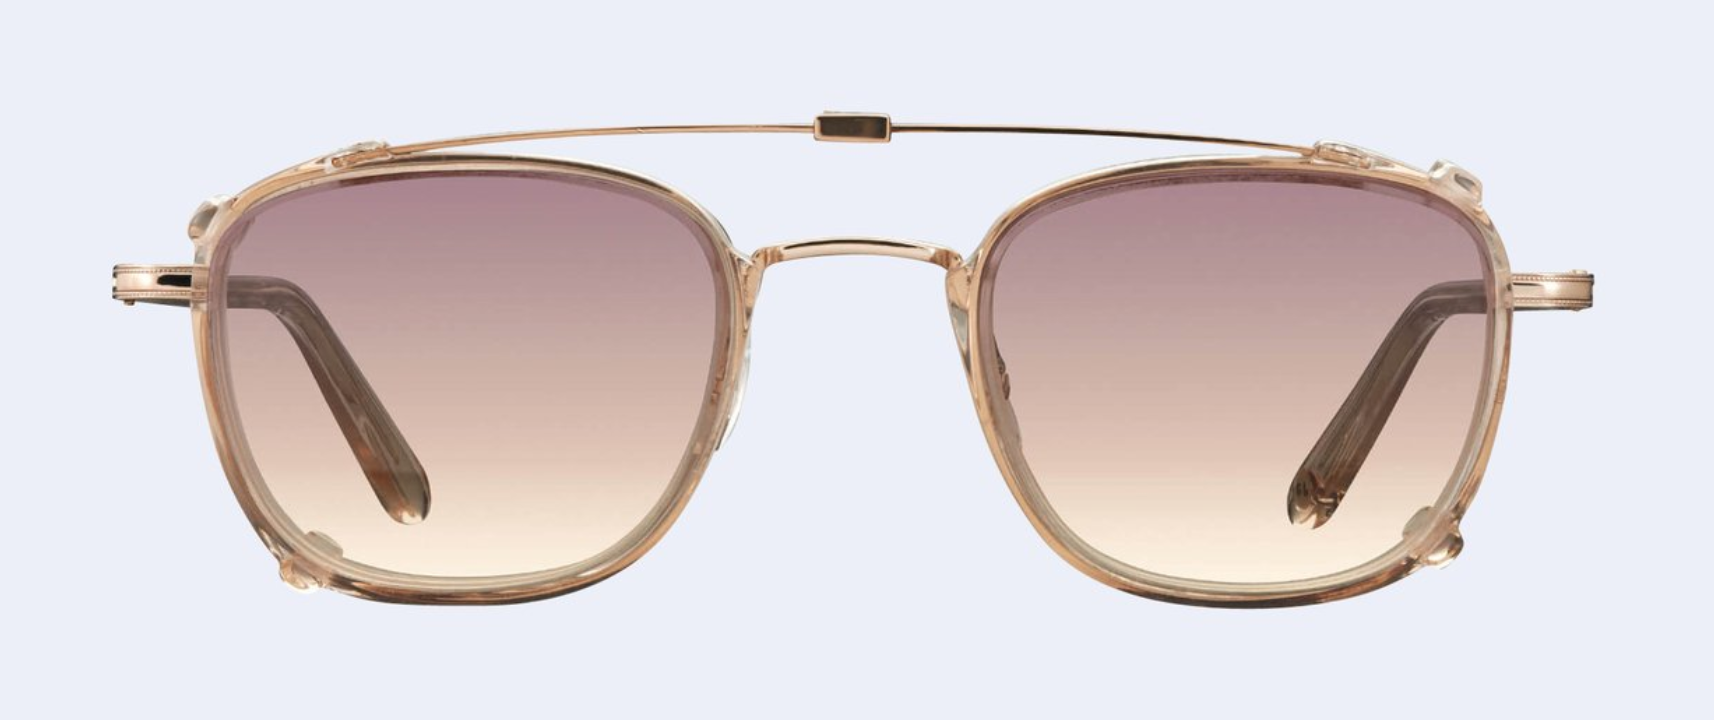 Garrett Leight Garfield Clip in Copper-Nude with Sunrise Gradient Mirror Lens